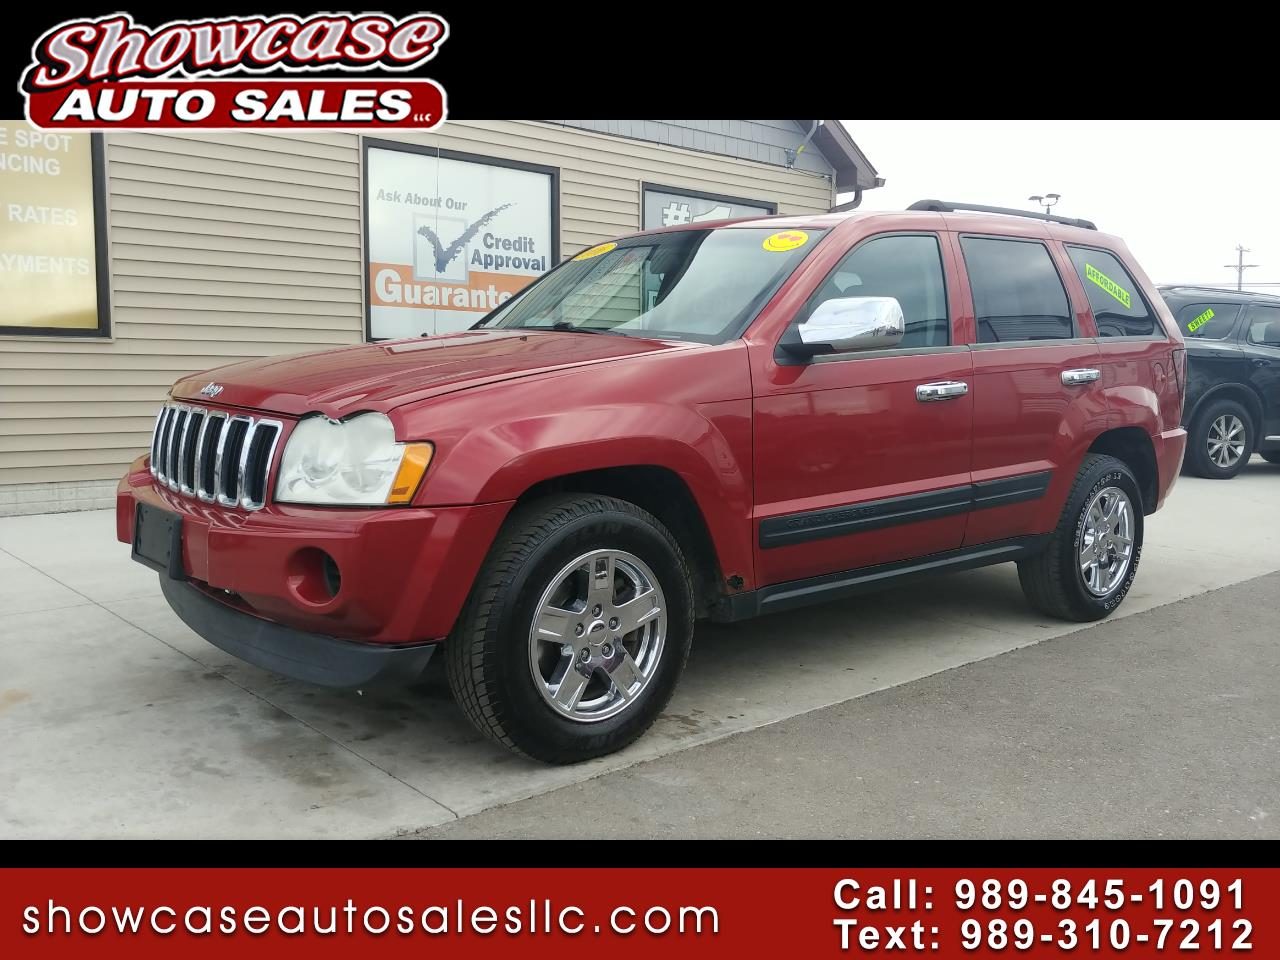 used 2006 jeep grand cherokee 4dr laredo 4wd for sale in chesaning mi 48616 showcase auto sales. Black Bedroom Furniture Sets. Home Design Ideas